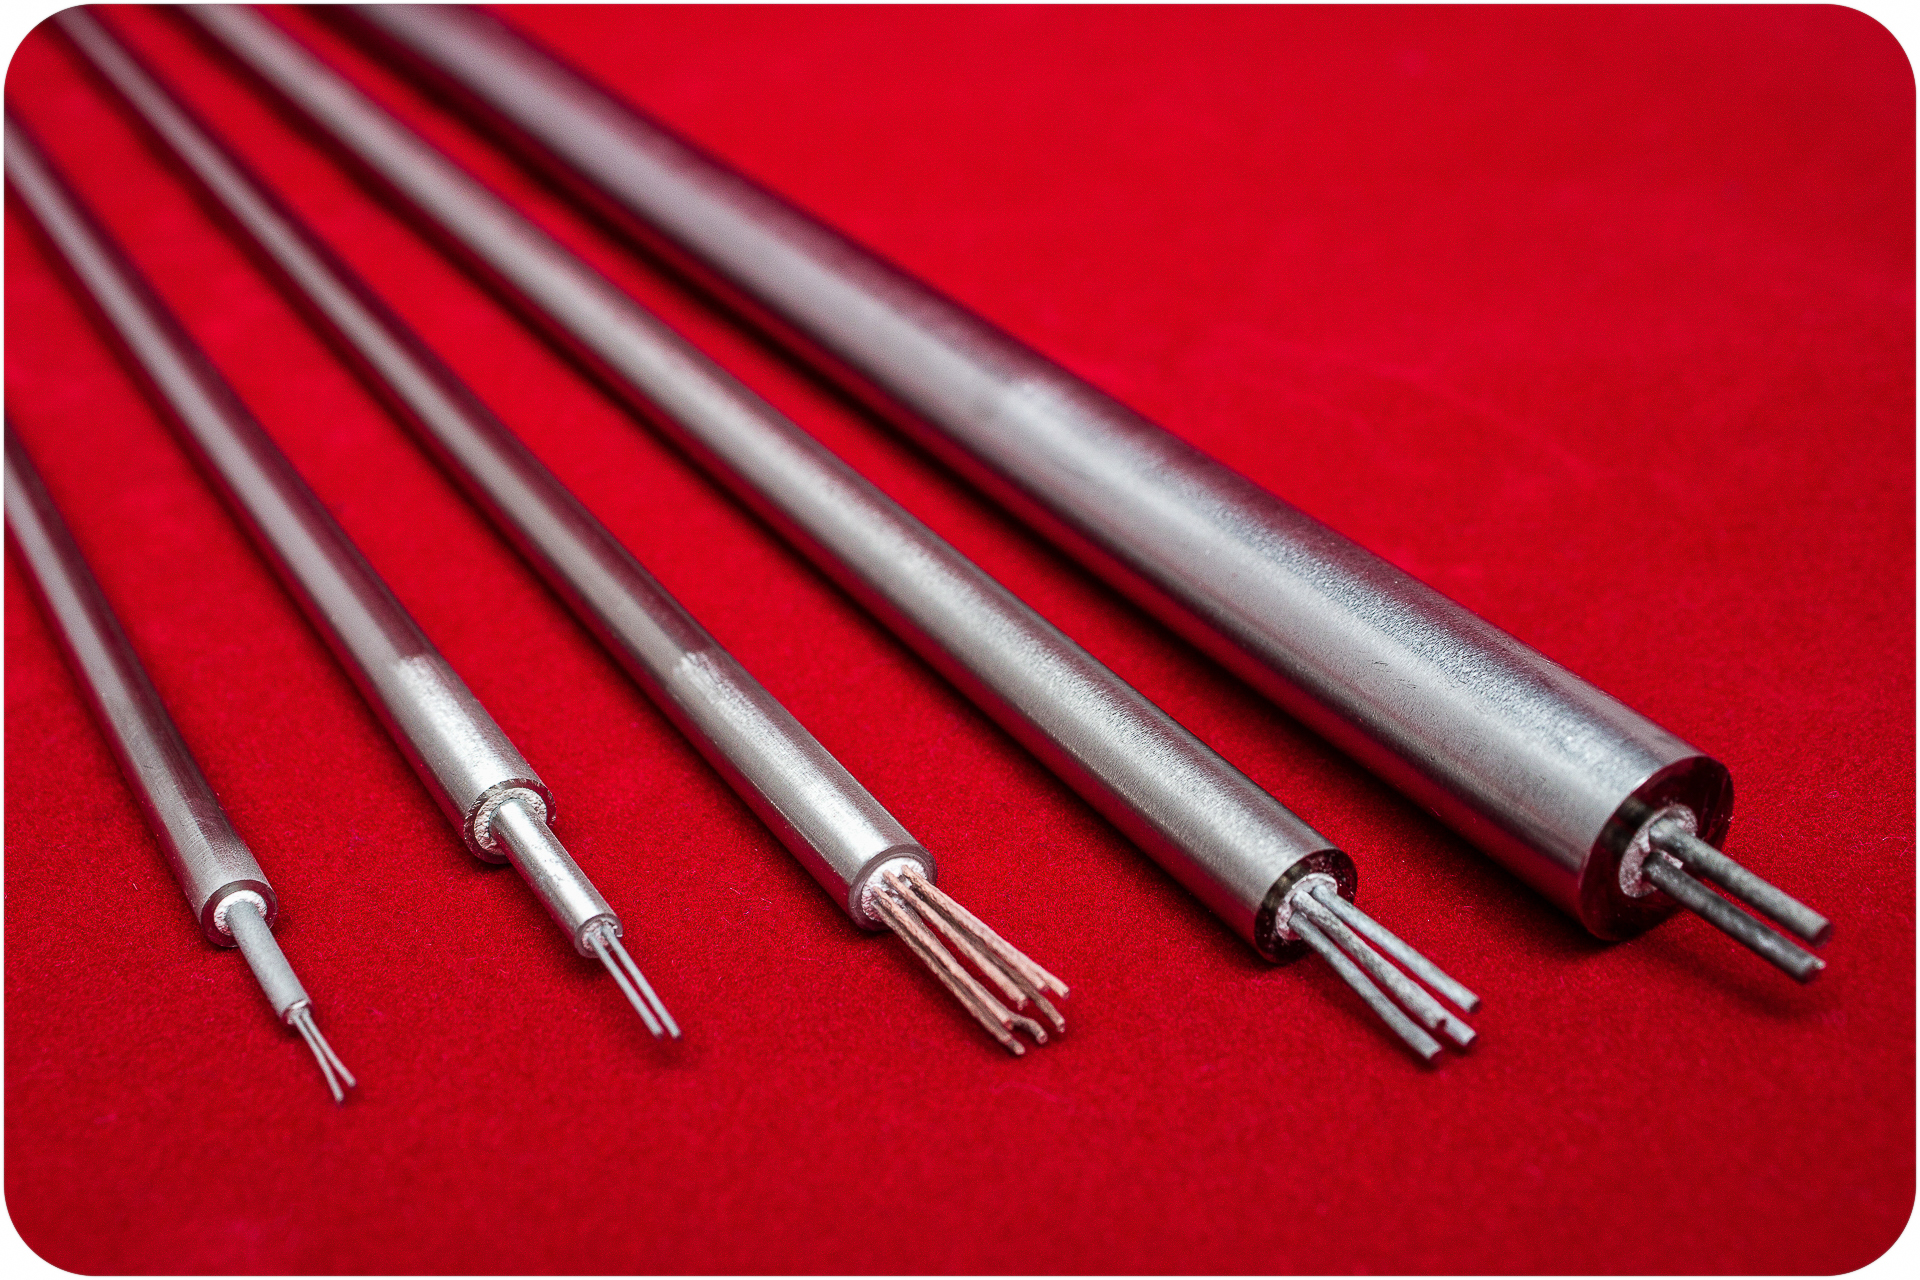 Mineral Insulated Cable Manufacturer : Mi cable aeropak temperature sensor rtd